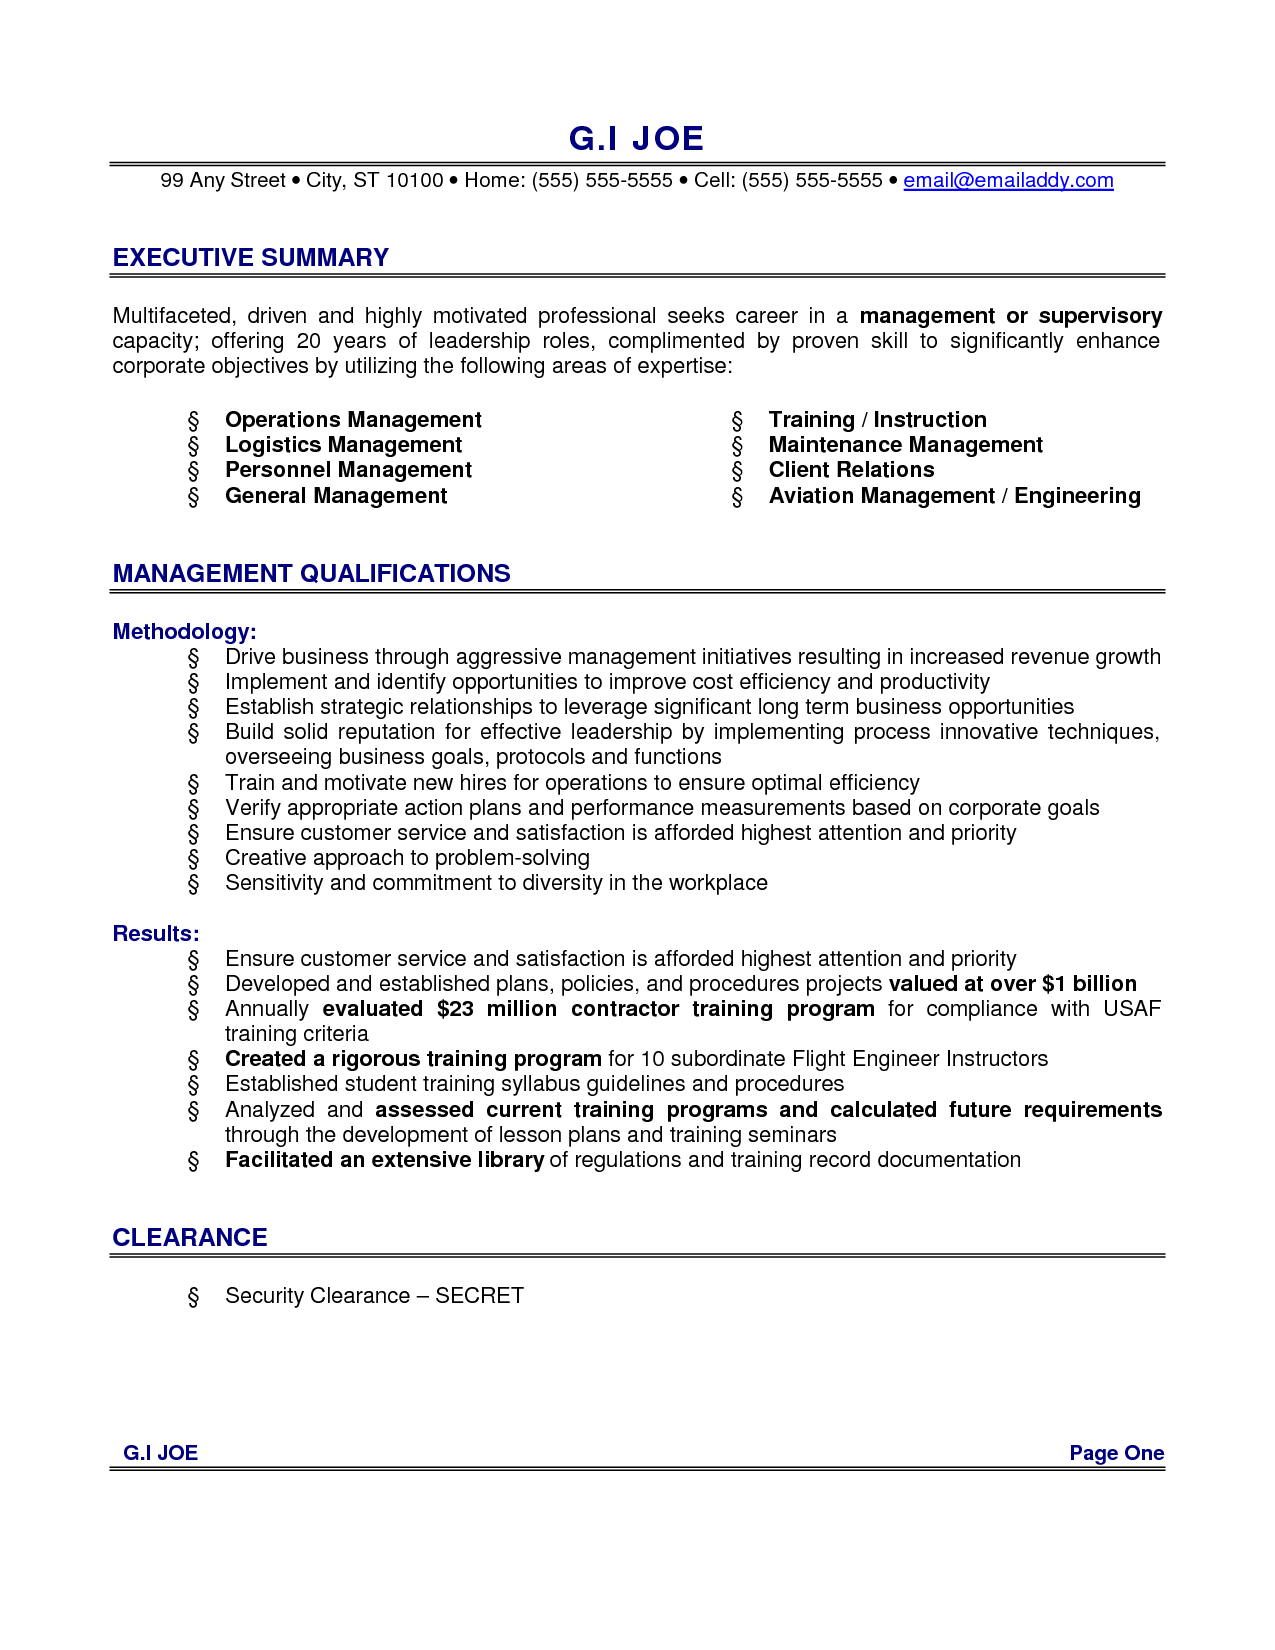 resume example executive summary with management qualifications summary for resume examples student by gi joe